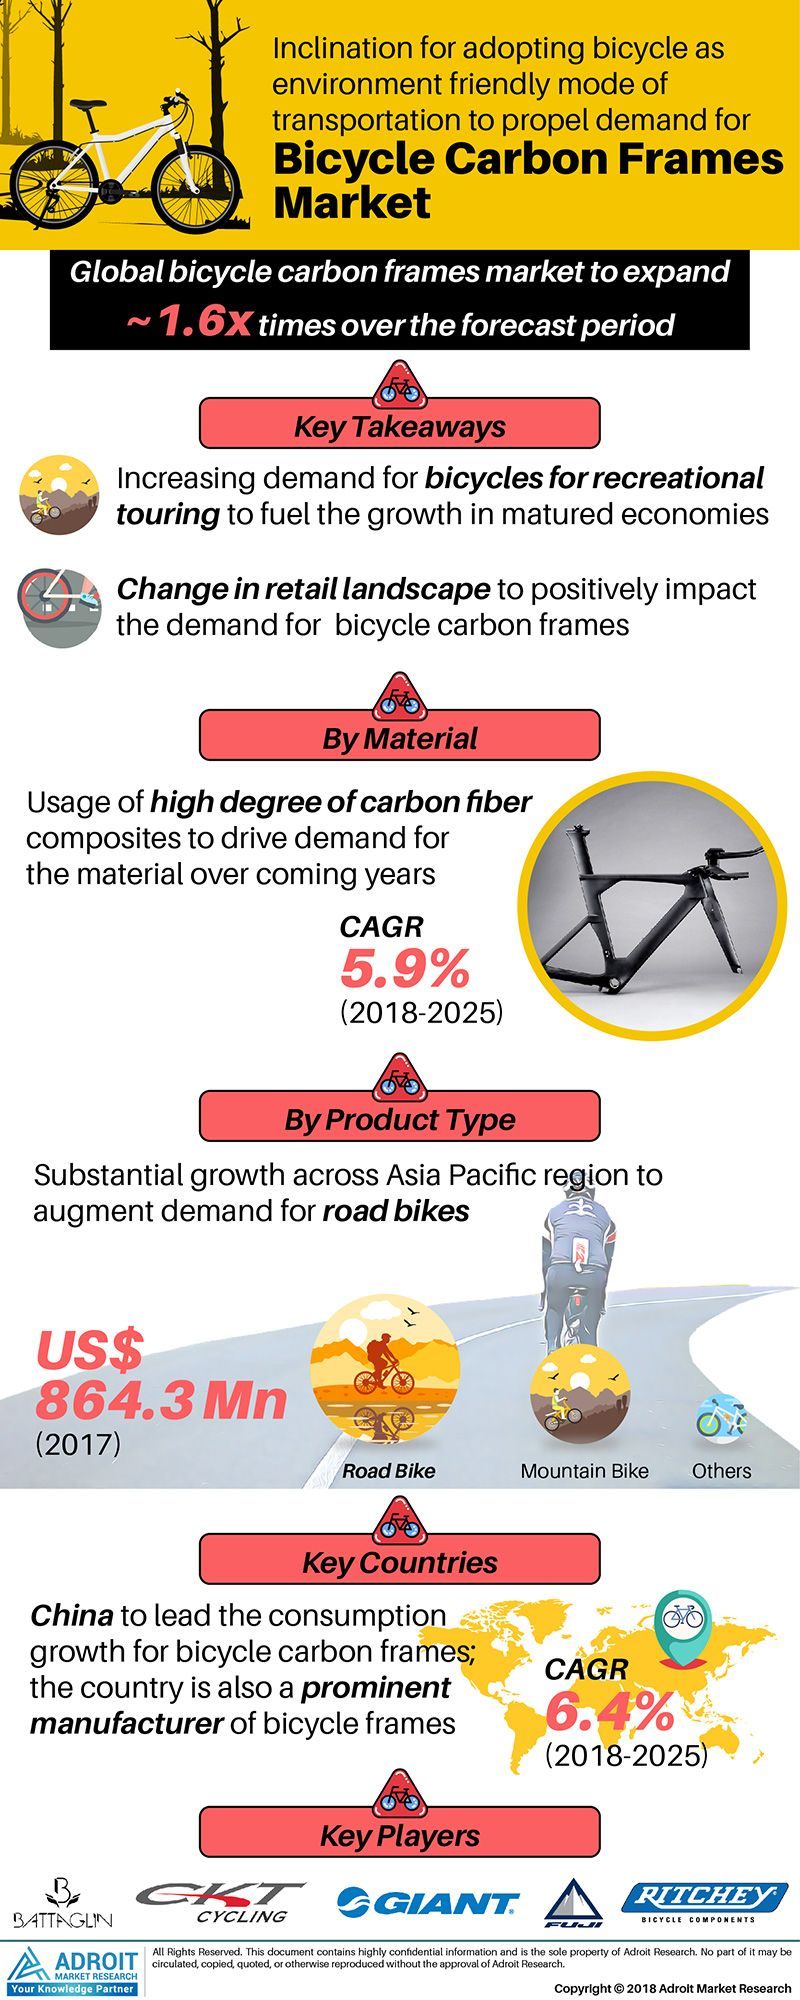 Global Bicycle Carbon Frames Market Size 2017 By Material